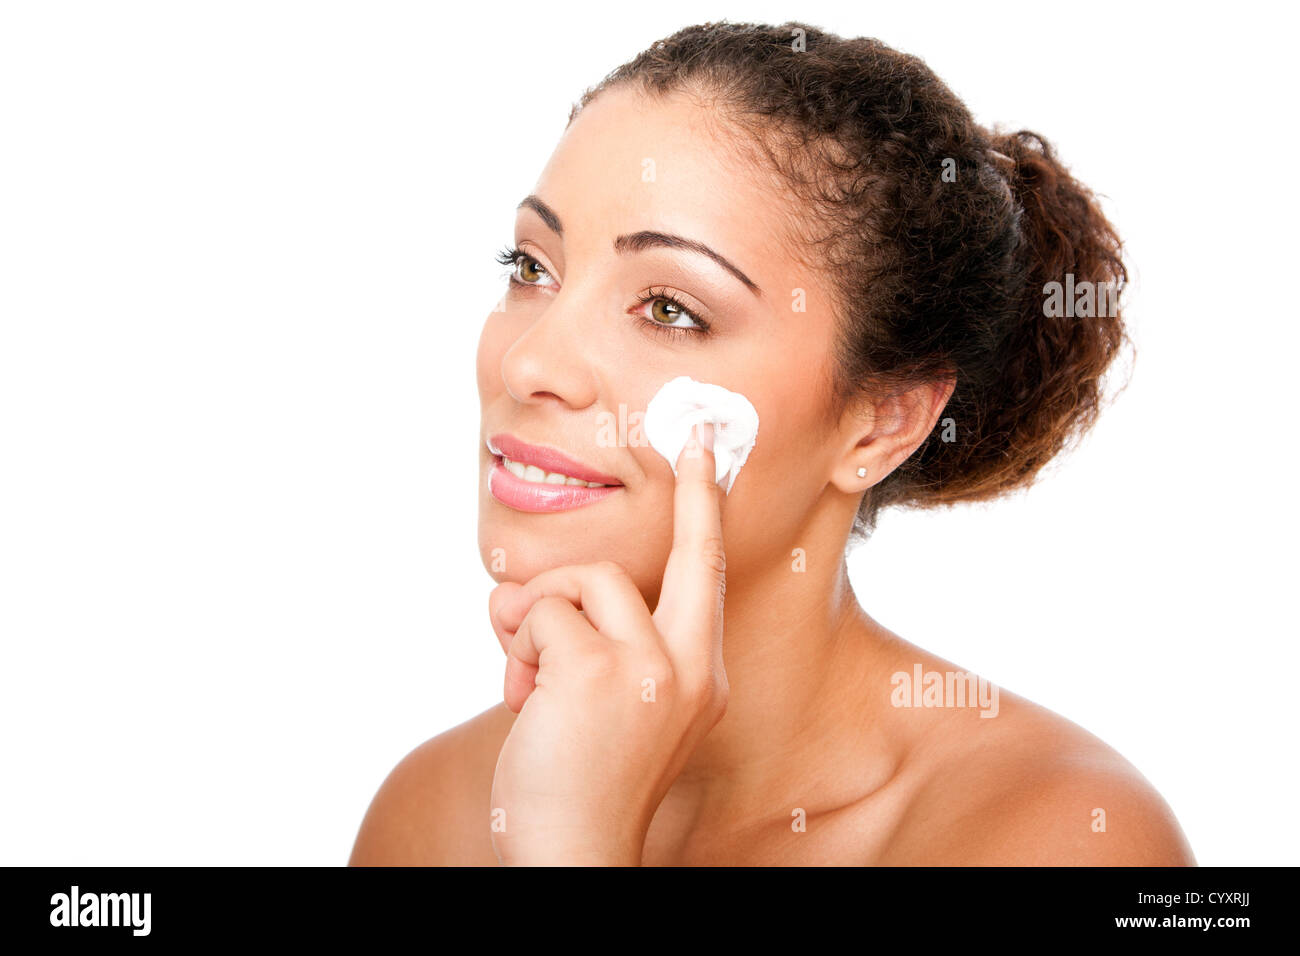 Beautiful face of young woman with hand applying exfoliating anti wrinkle cream beauty treatment for skincare, isolated. - Stock Image